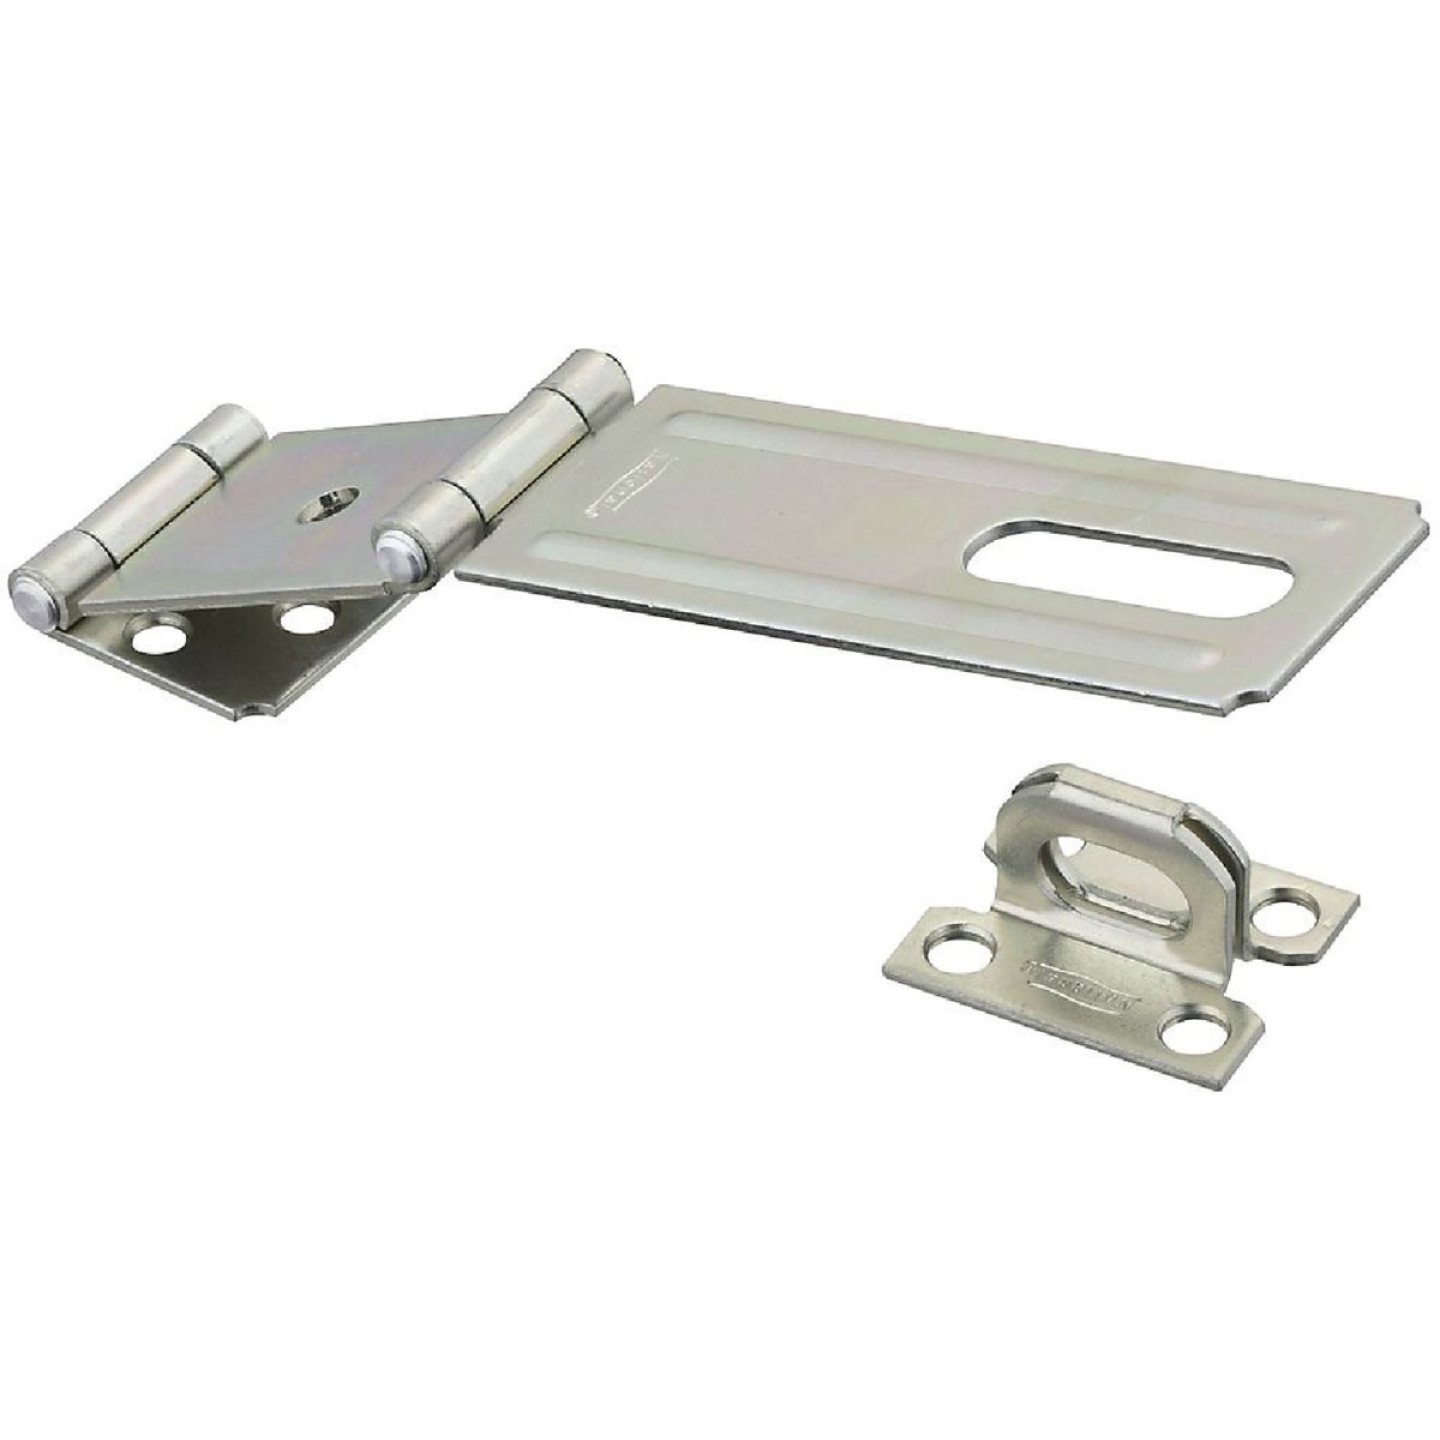 National 4-1/2 In. Double Hinge Zinc Hasp Image 1